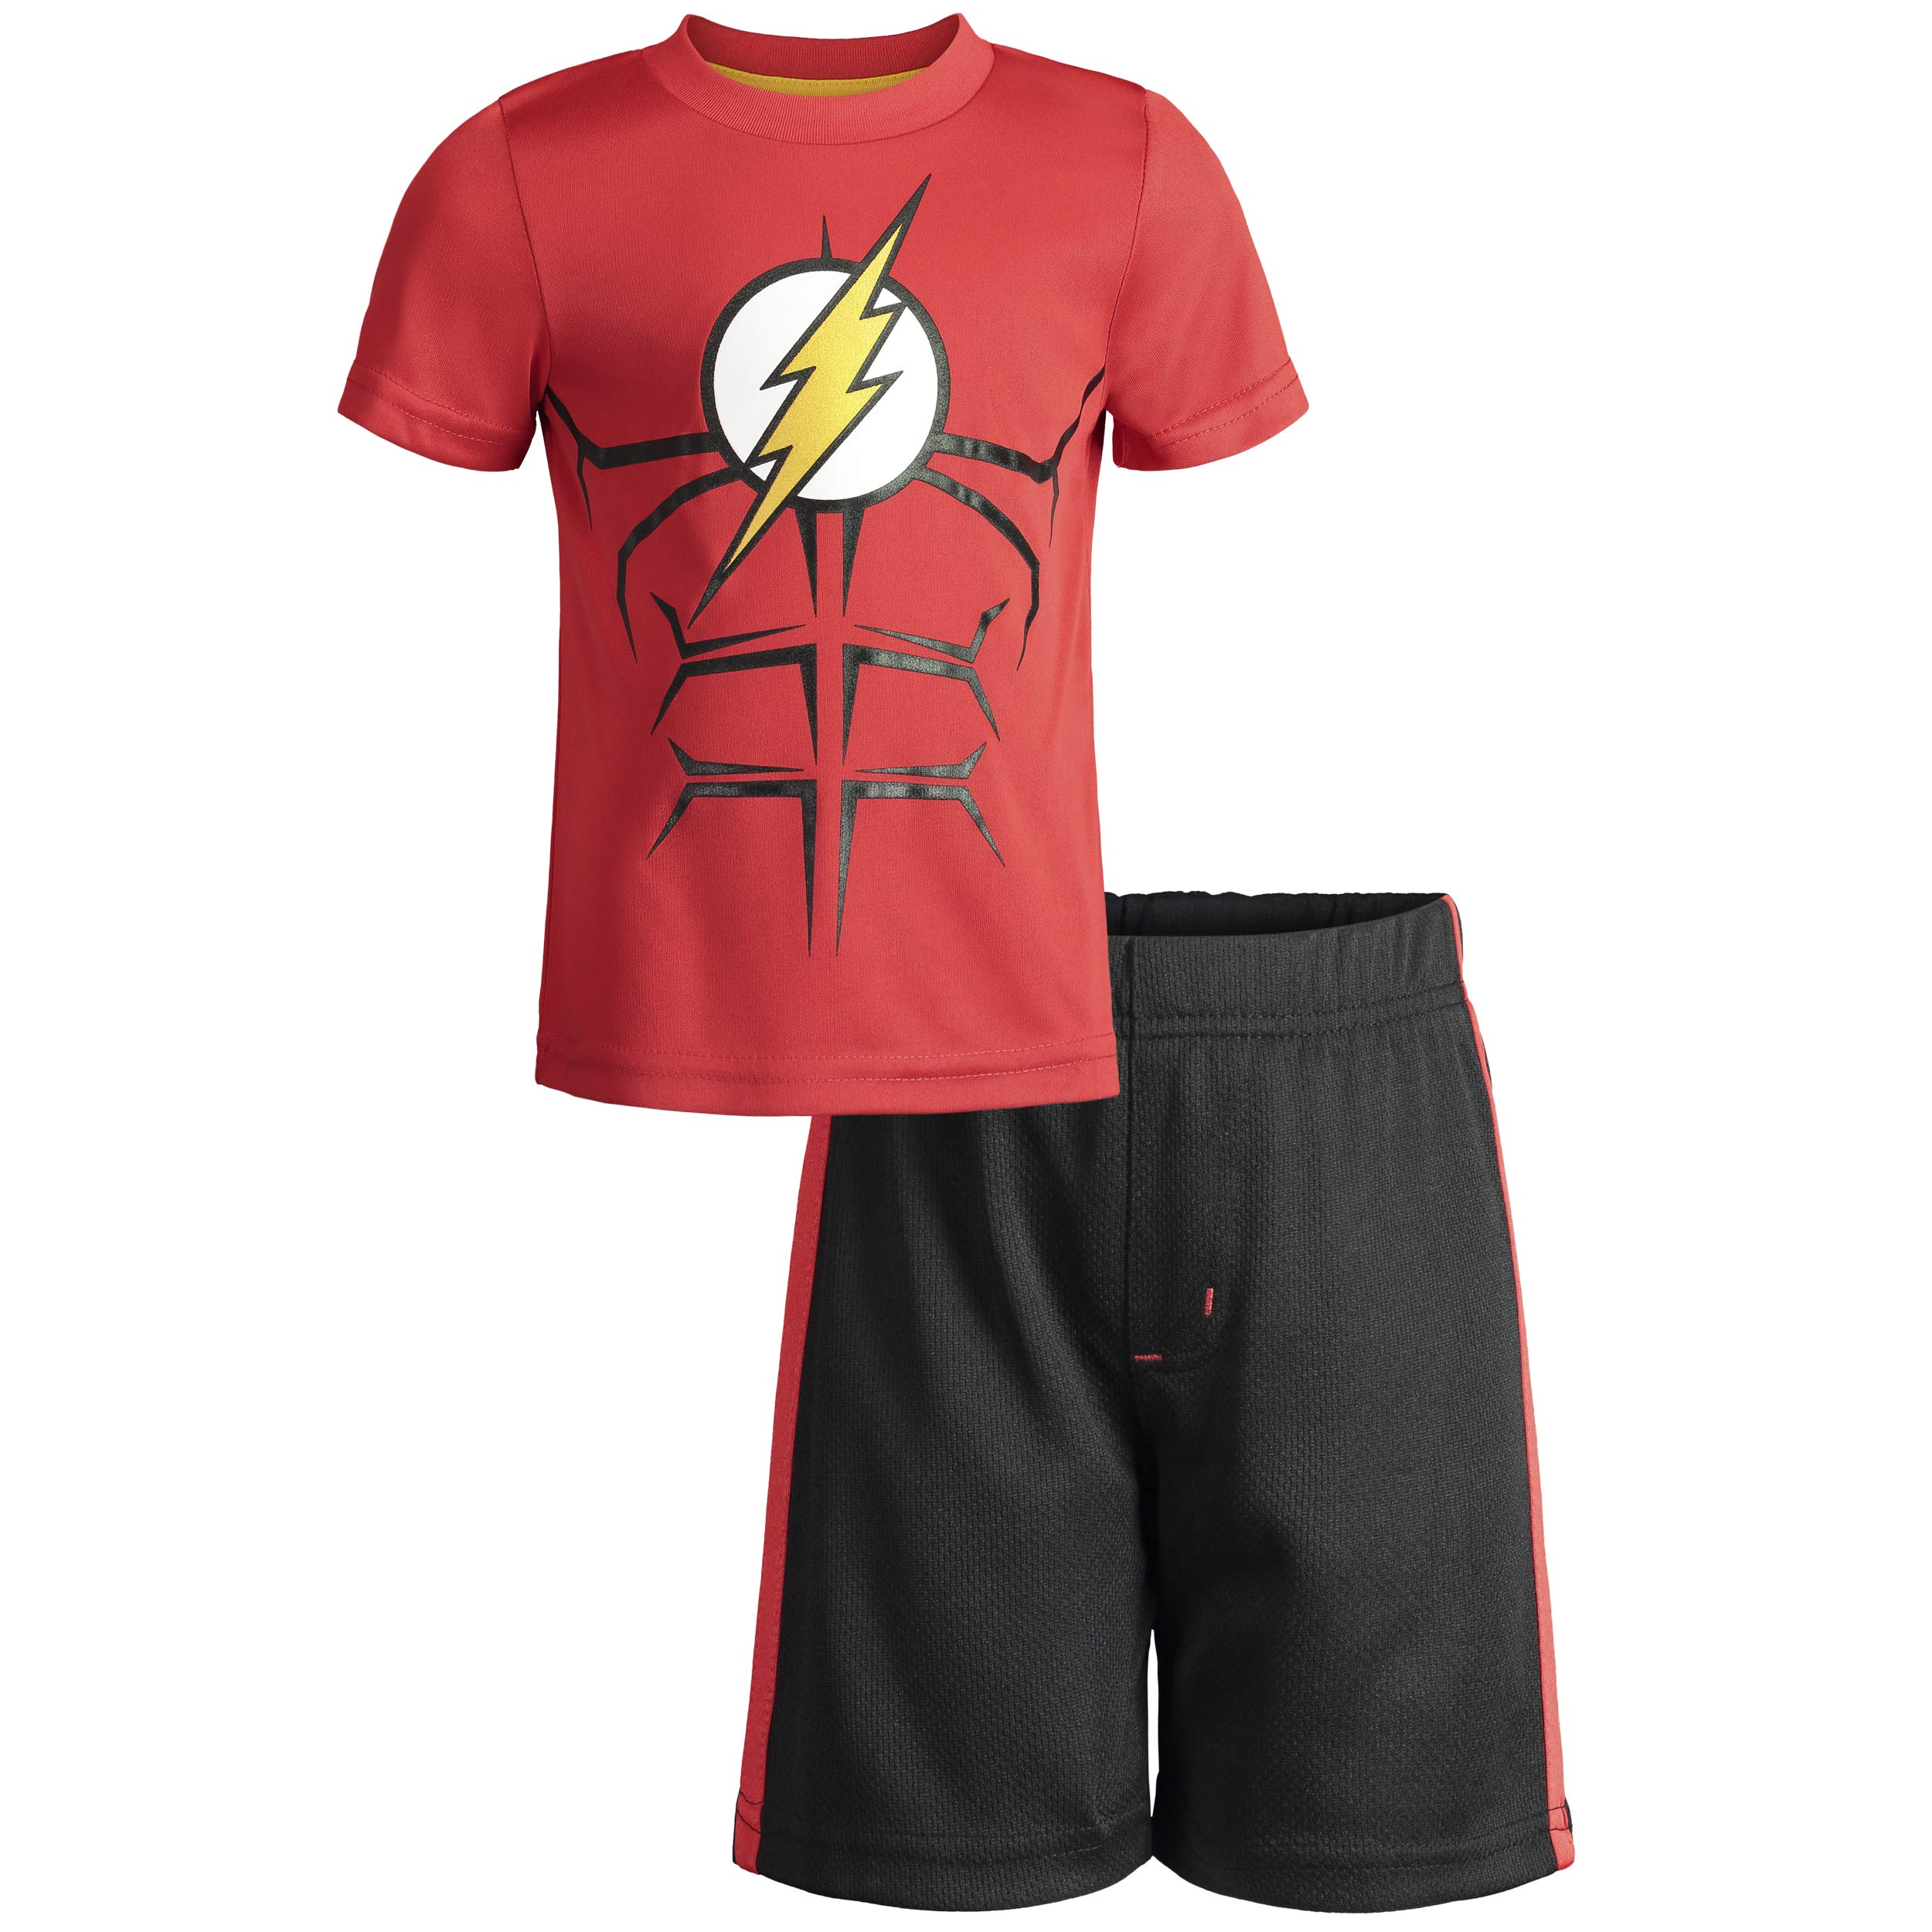 Warner Bros The Flash Little Boys' Athletic Performance T-Shirt & Mesh Shorts Set, Red/Black (7)